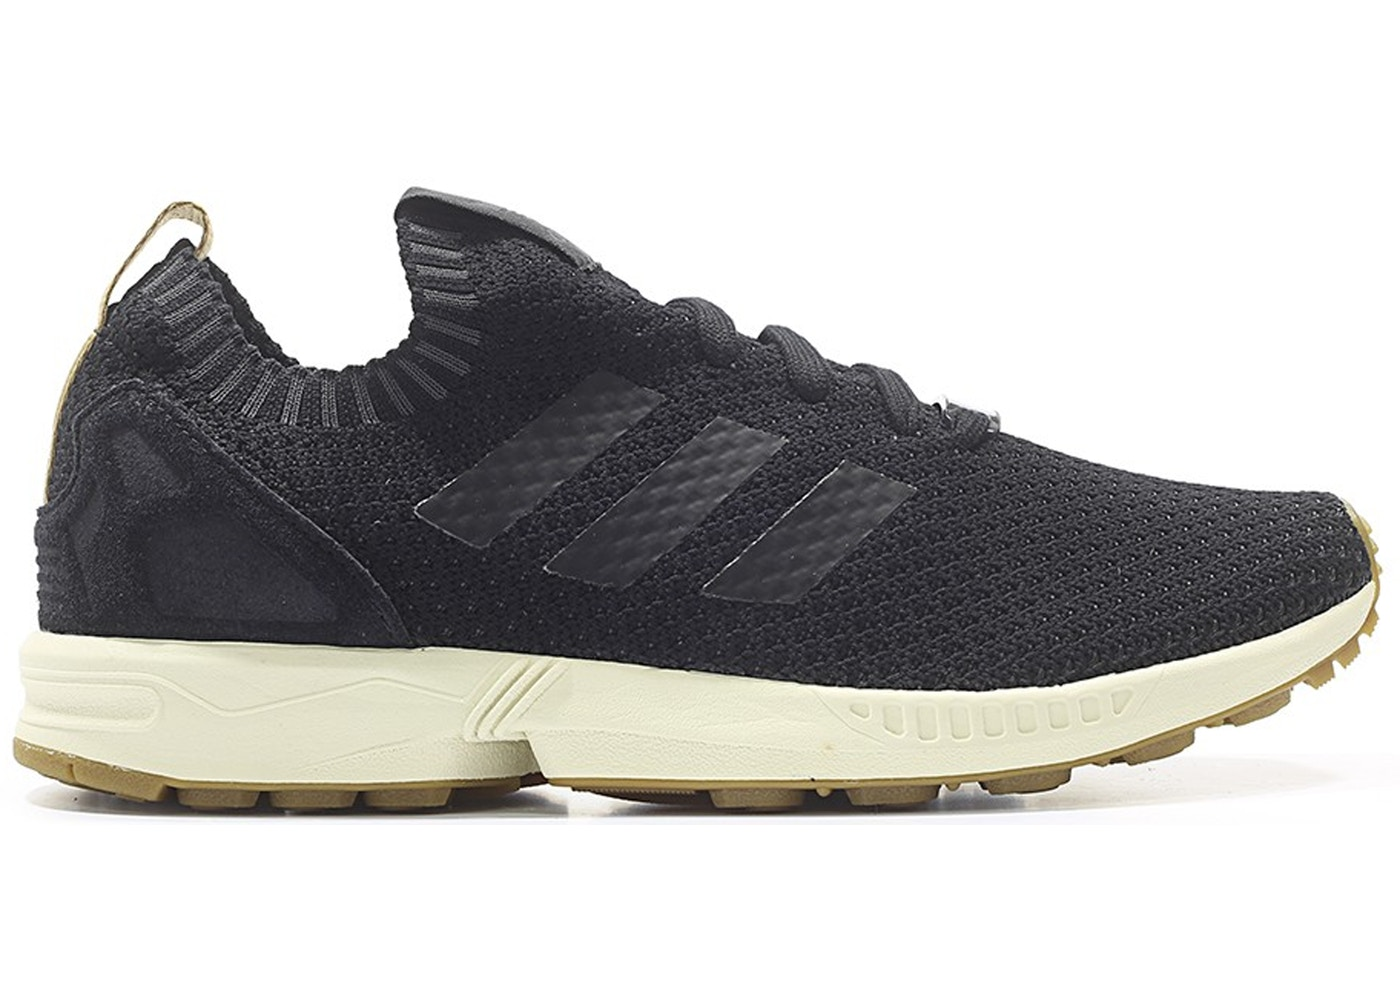 info for 510e9 a9fd4 adidas ZX Flux Primeknit Black Gum